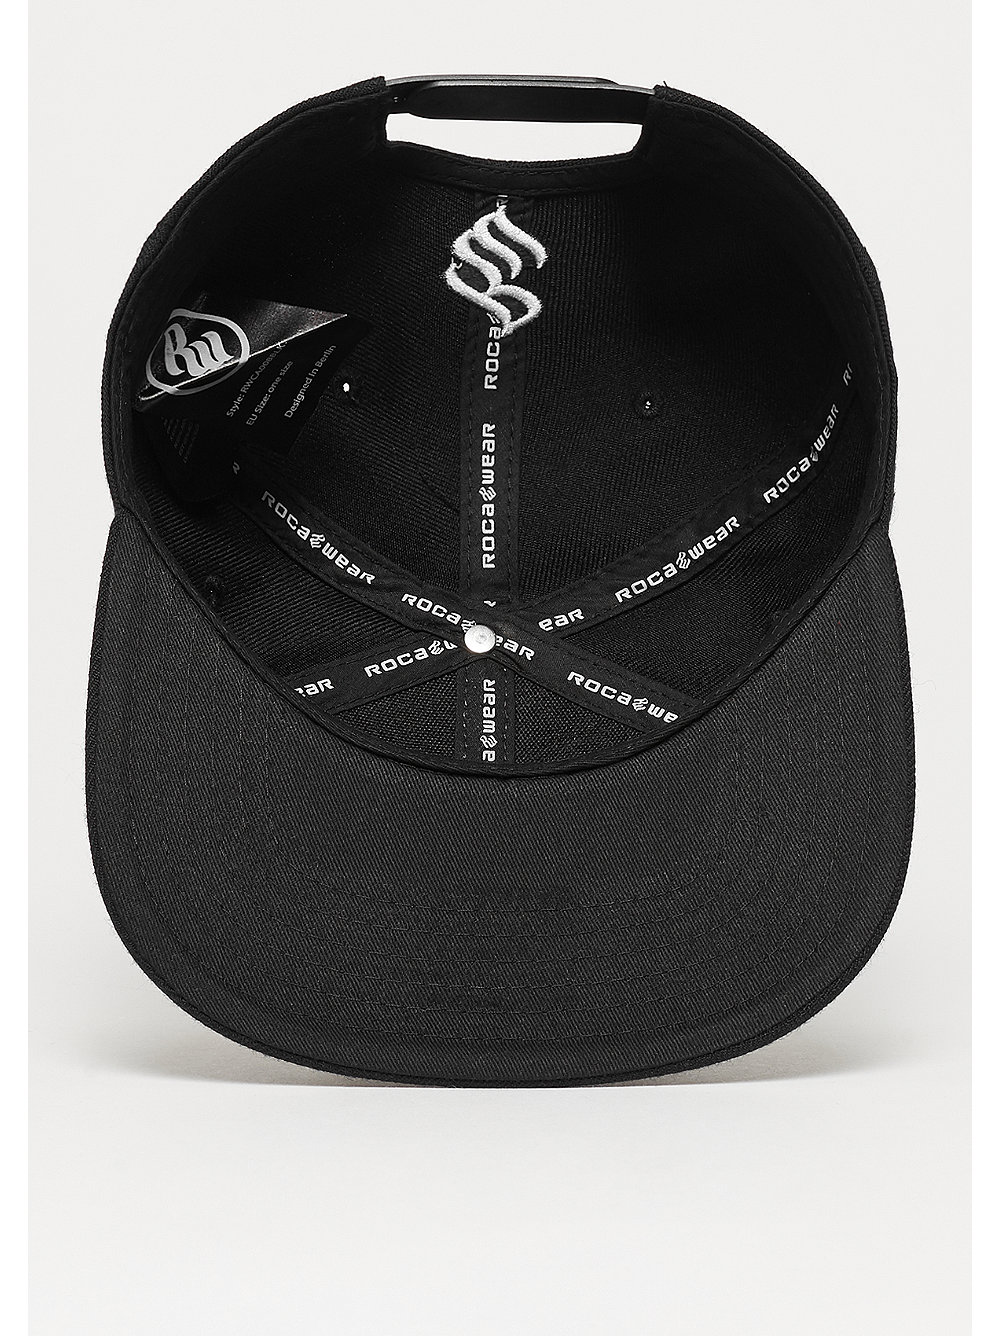 Rocawear teddy chain cap black fitted caps bij snipes bestellen jpg  1000x1336 Fitted rocawear logo baseball 593e150a6001